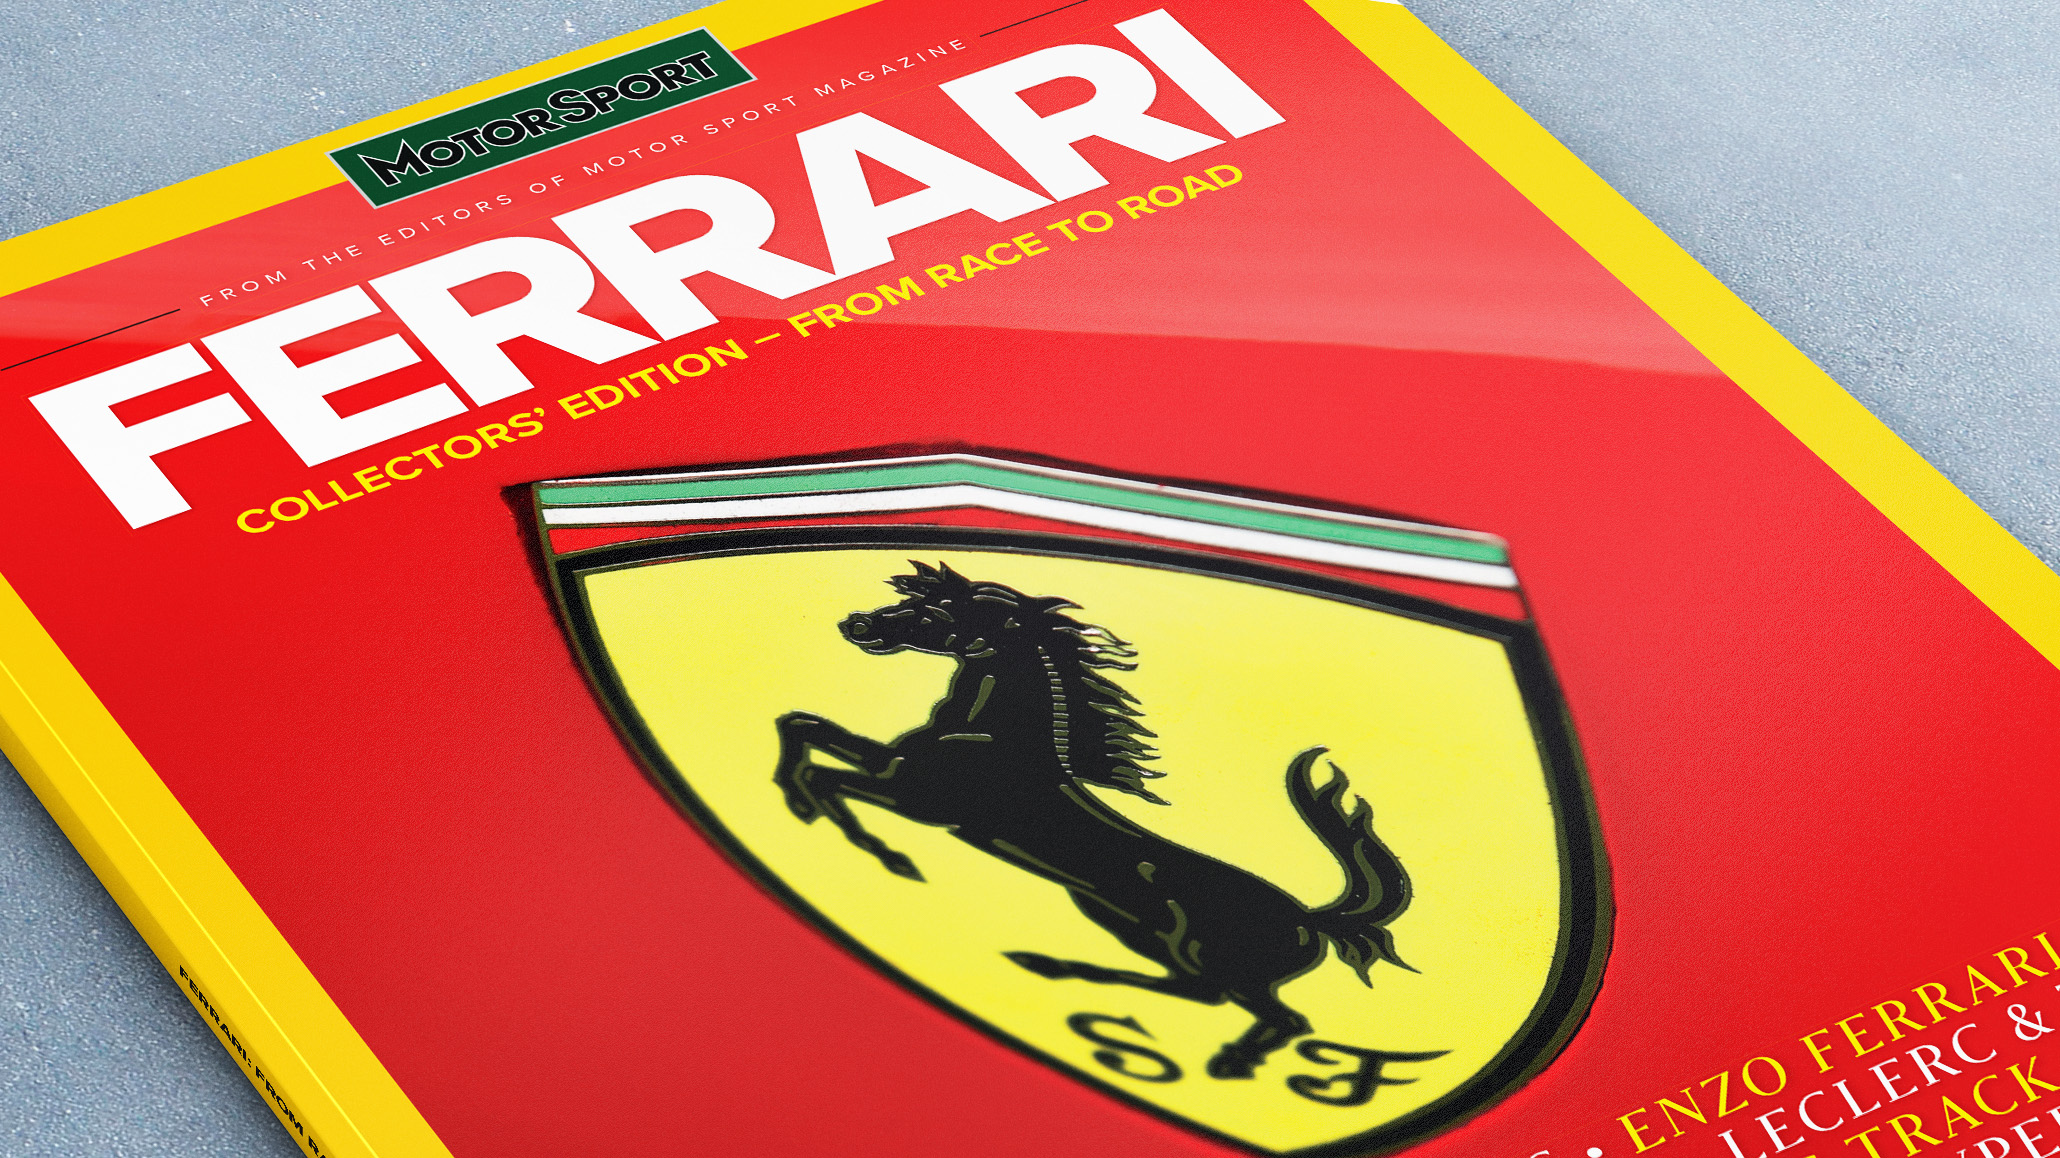 Ferrari gifts: art, books and memorabilia